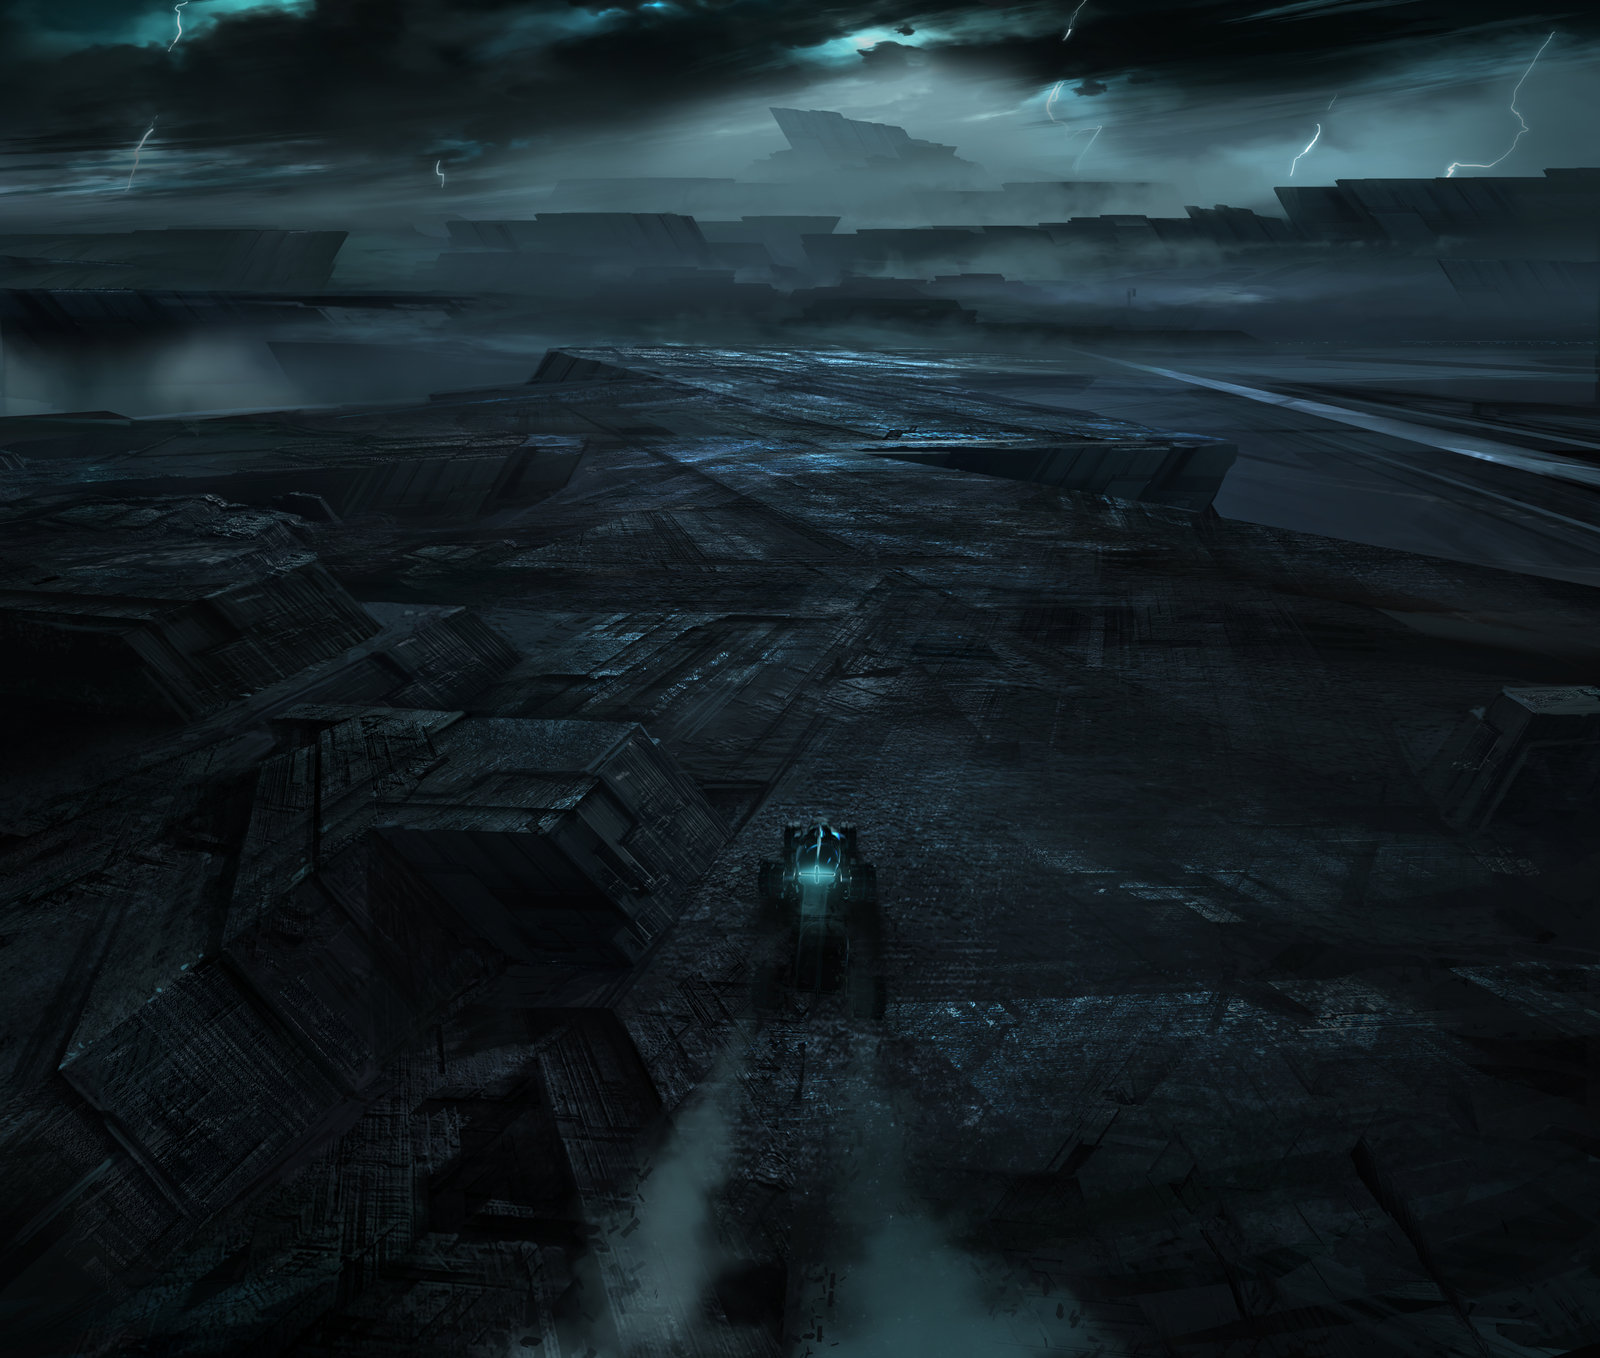 Tron_legacy_to_the_safe_house_by_vyle_art-d385s57.jpg